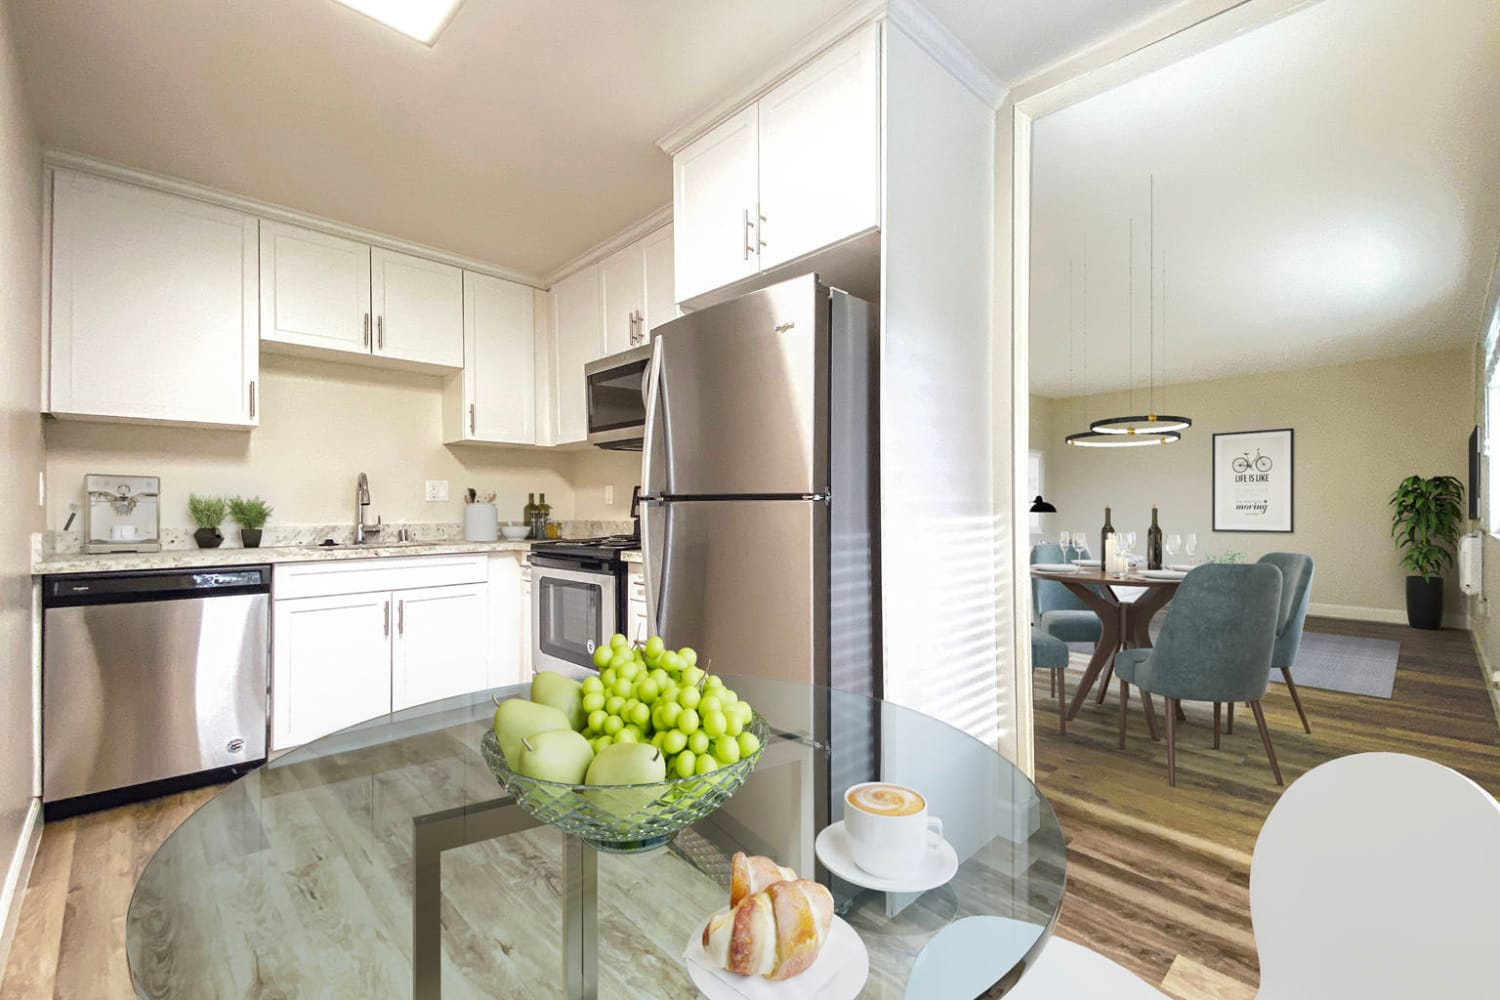 Bright white cabinetry and stainless-steel appliances in a model home's kitchen at Pleasanton Heights in Pleasanton, California